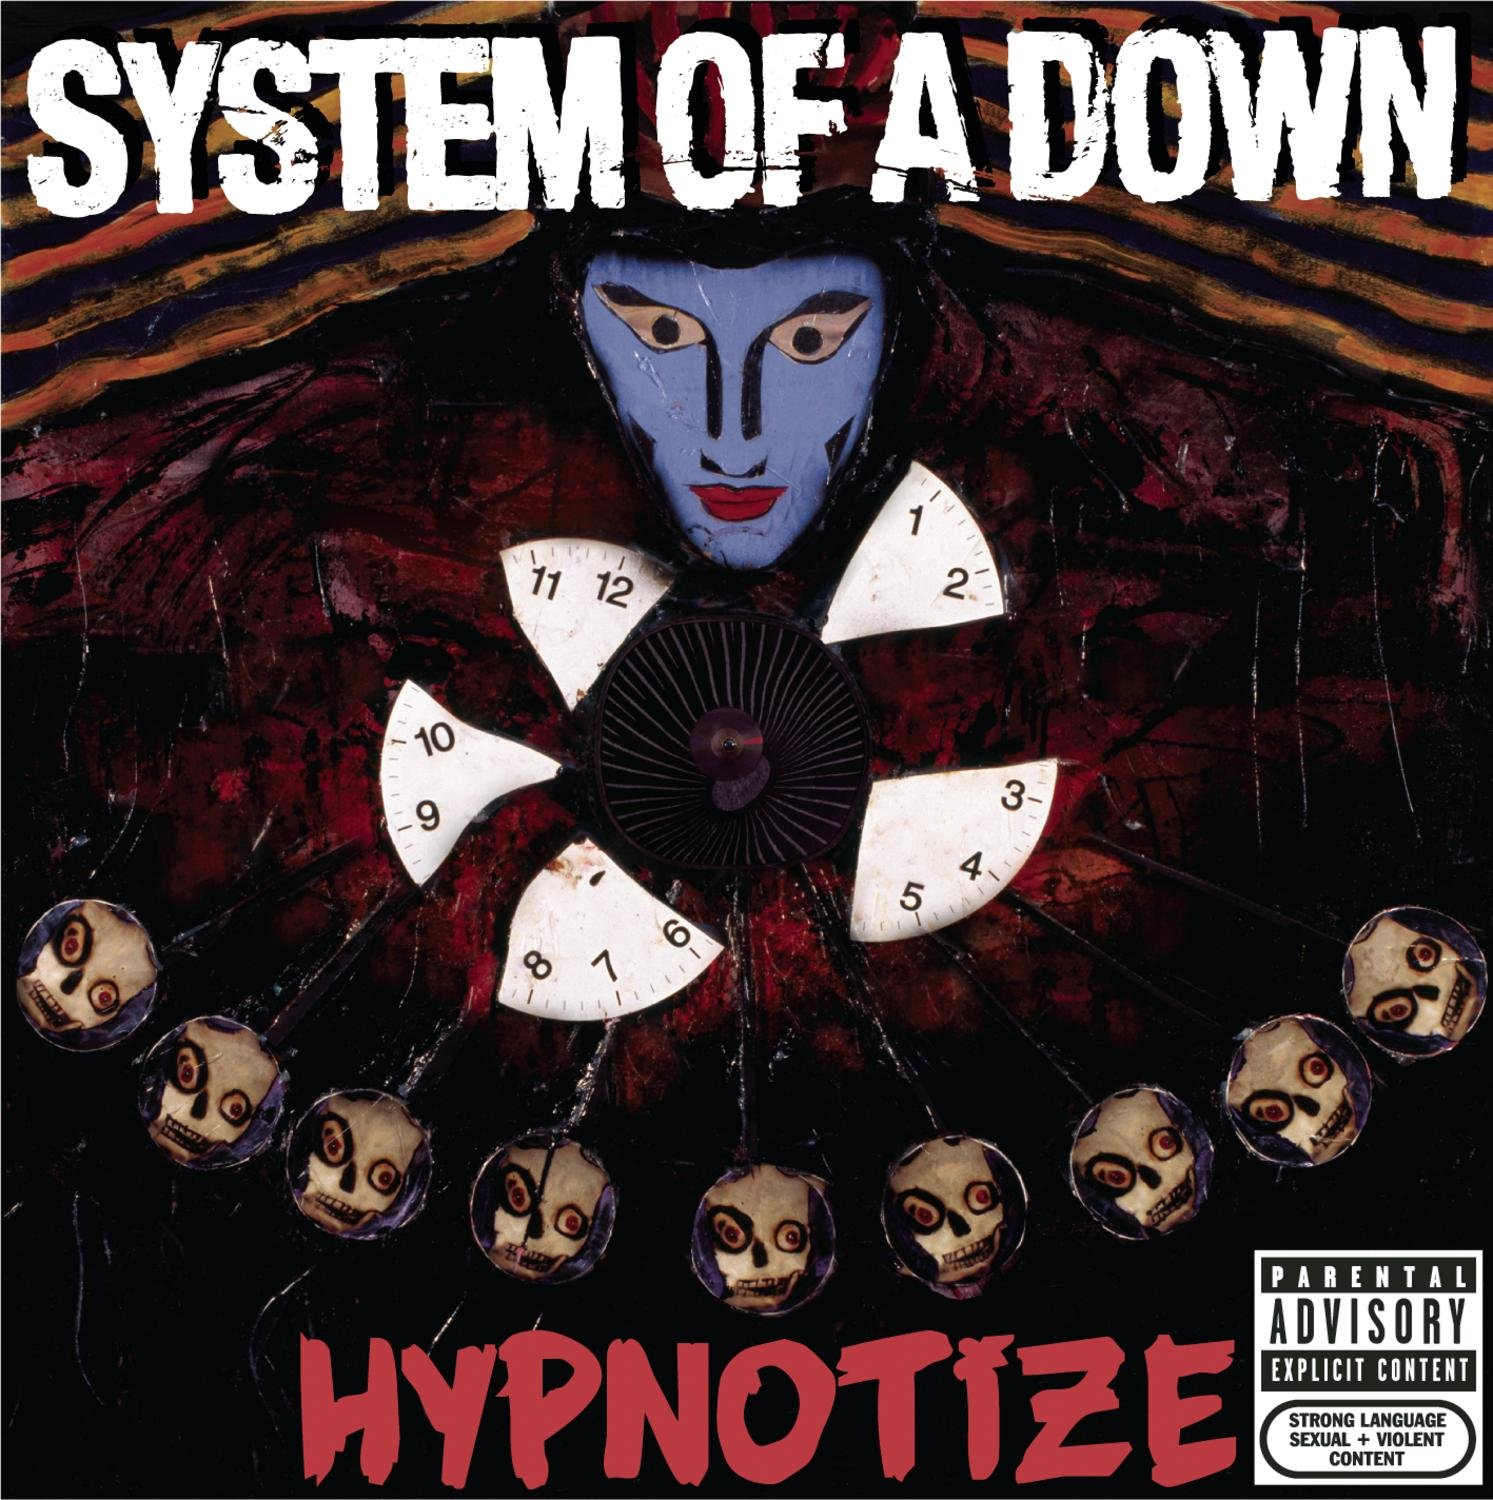 CD : System of a Down - Hypnotize [Explicit Content] (CD)